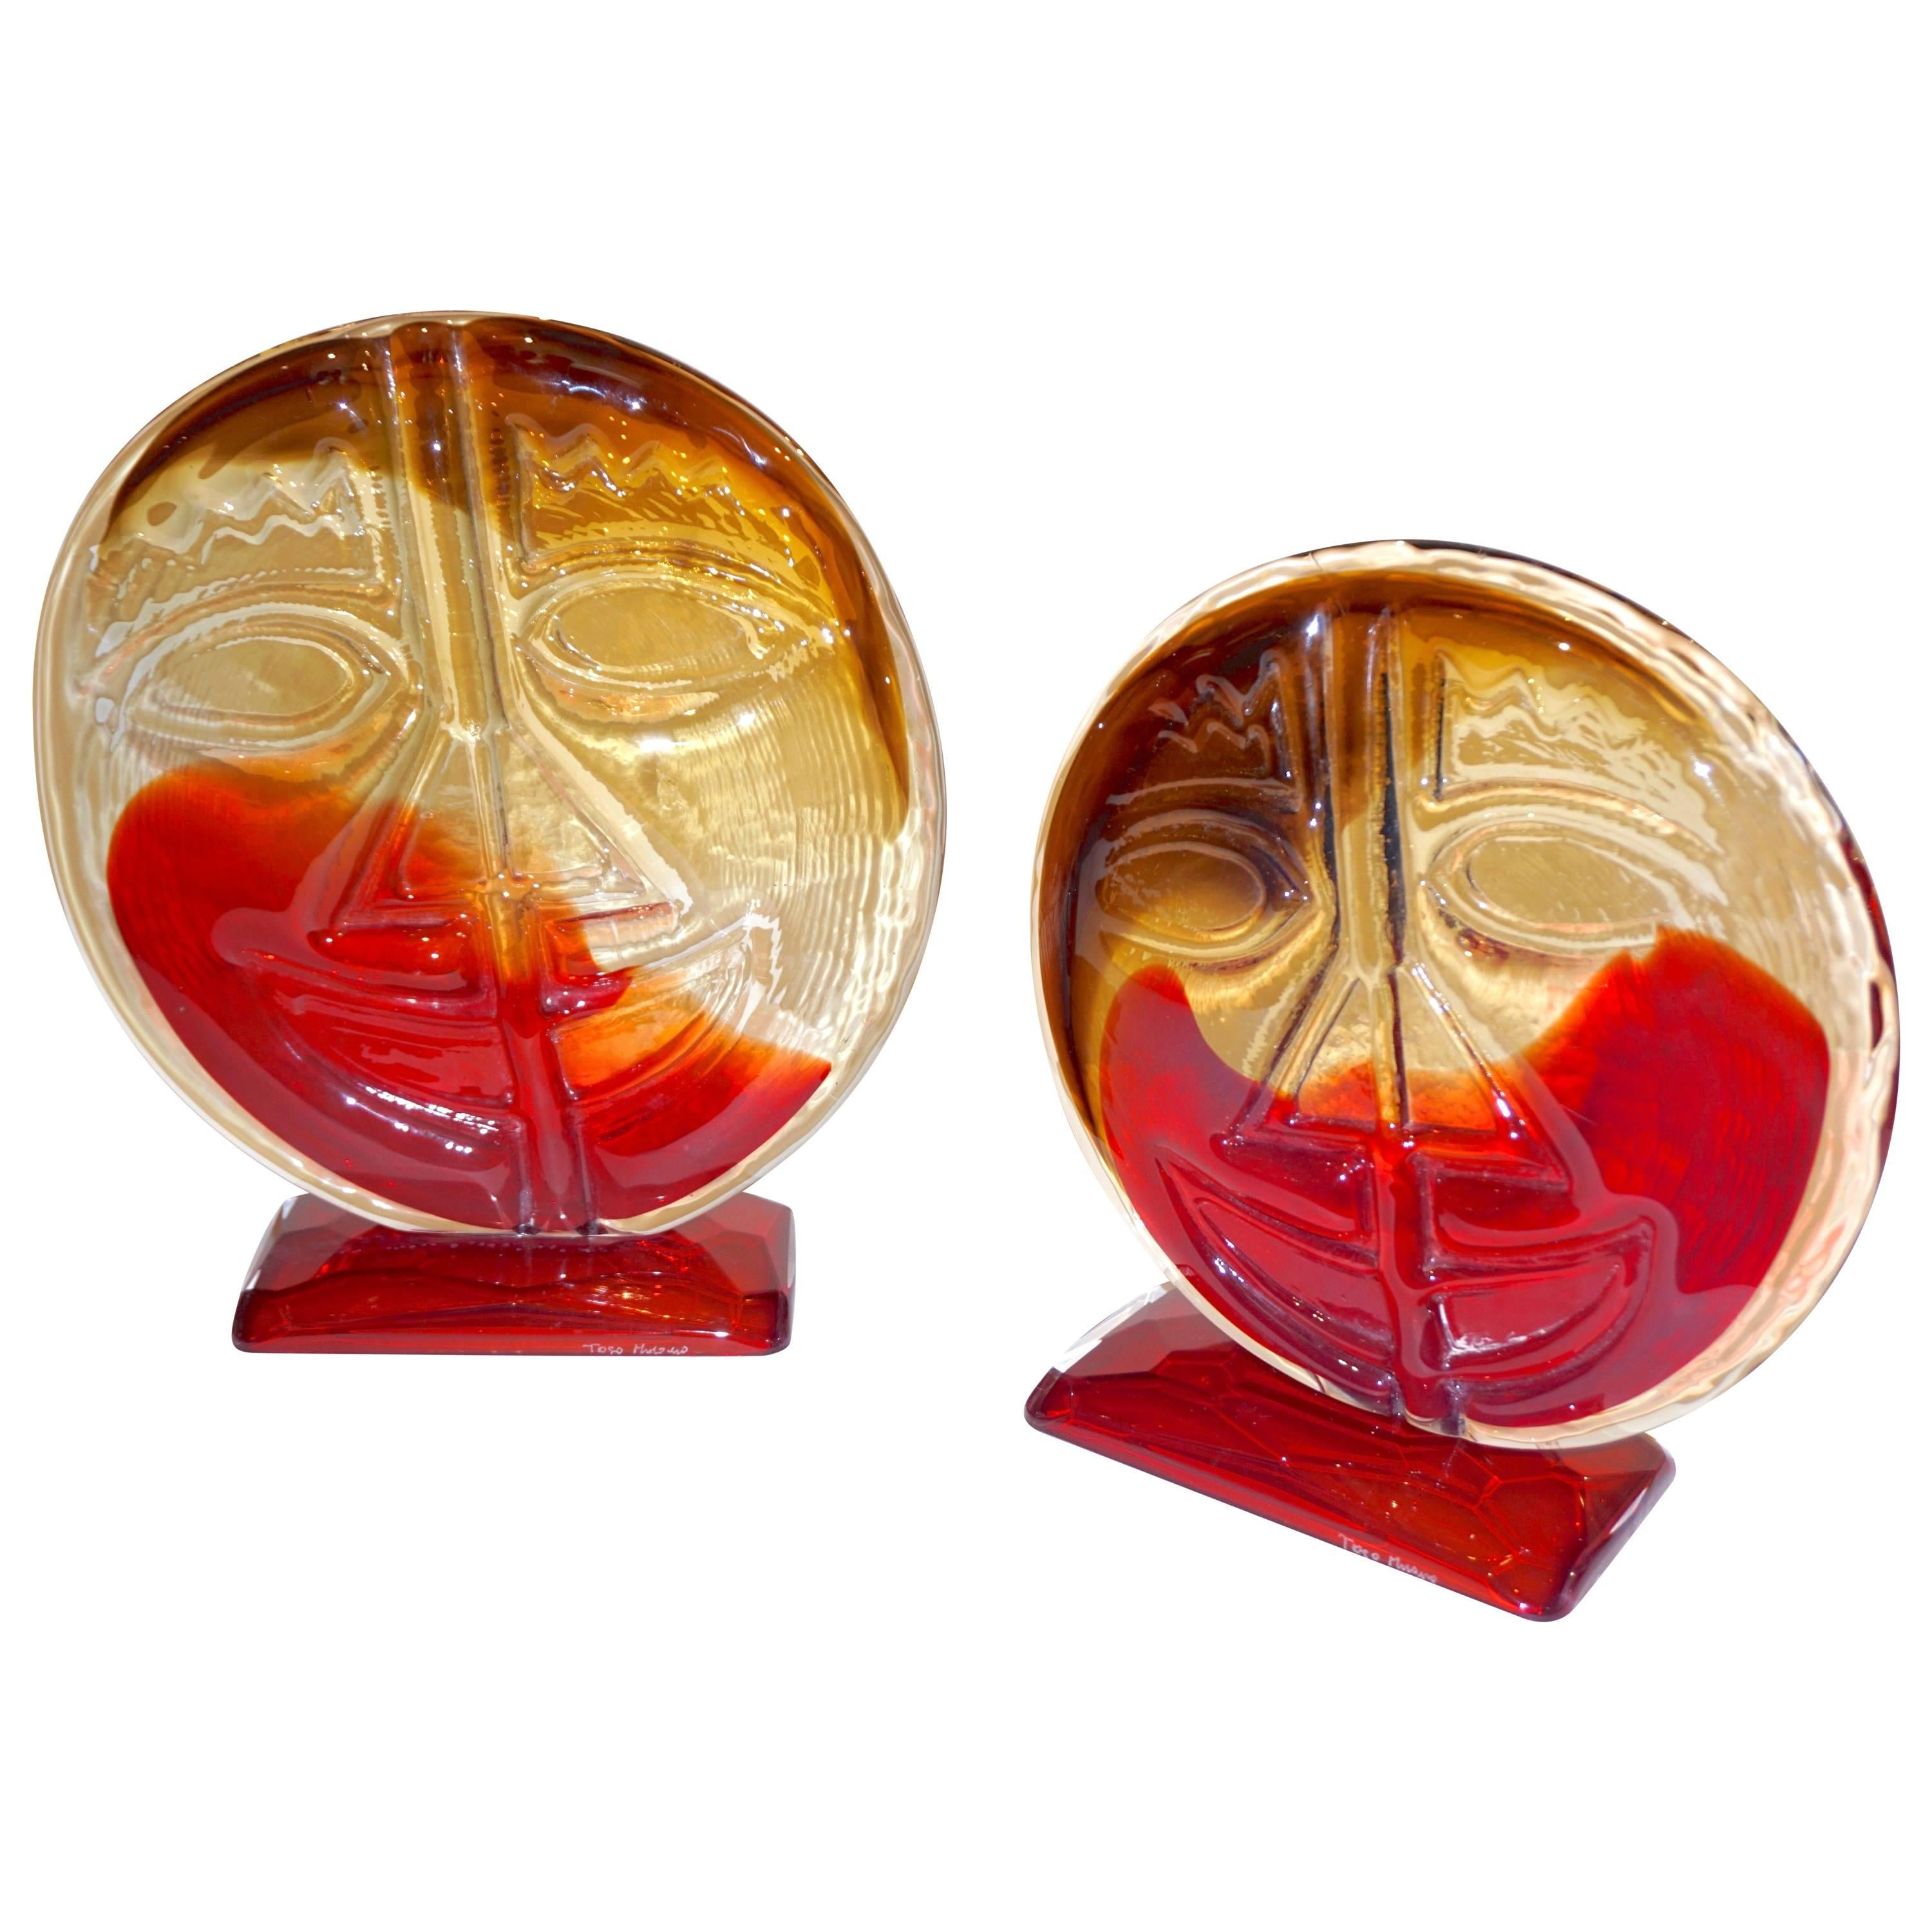 Cesare Toso 1970s Pair of Abstract Red and Amber Murano Art Glass Round Faces